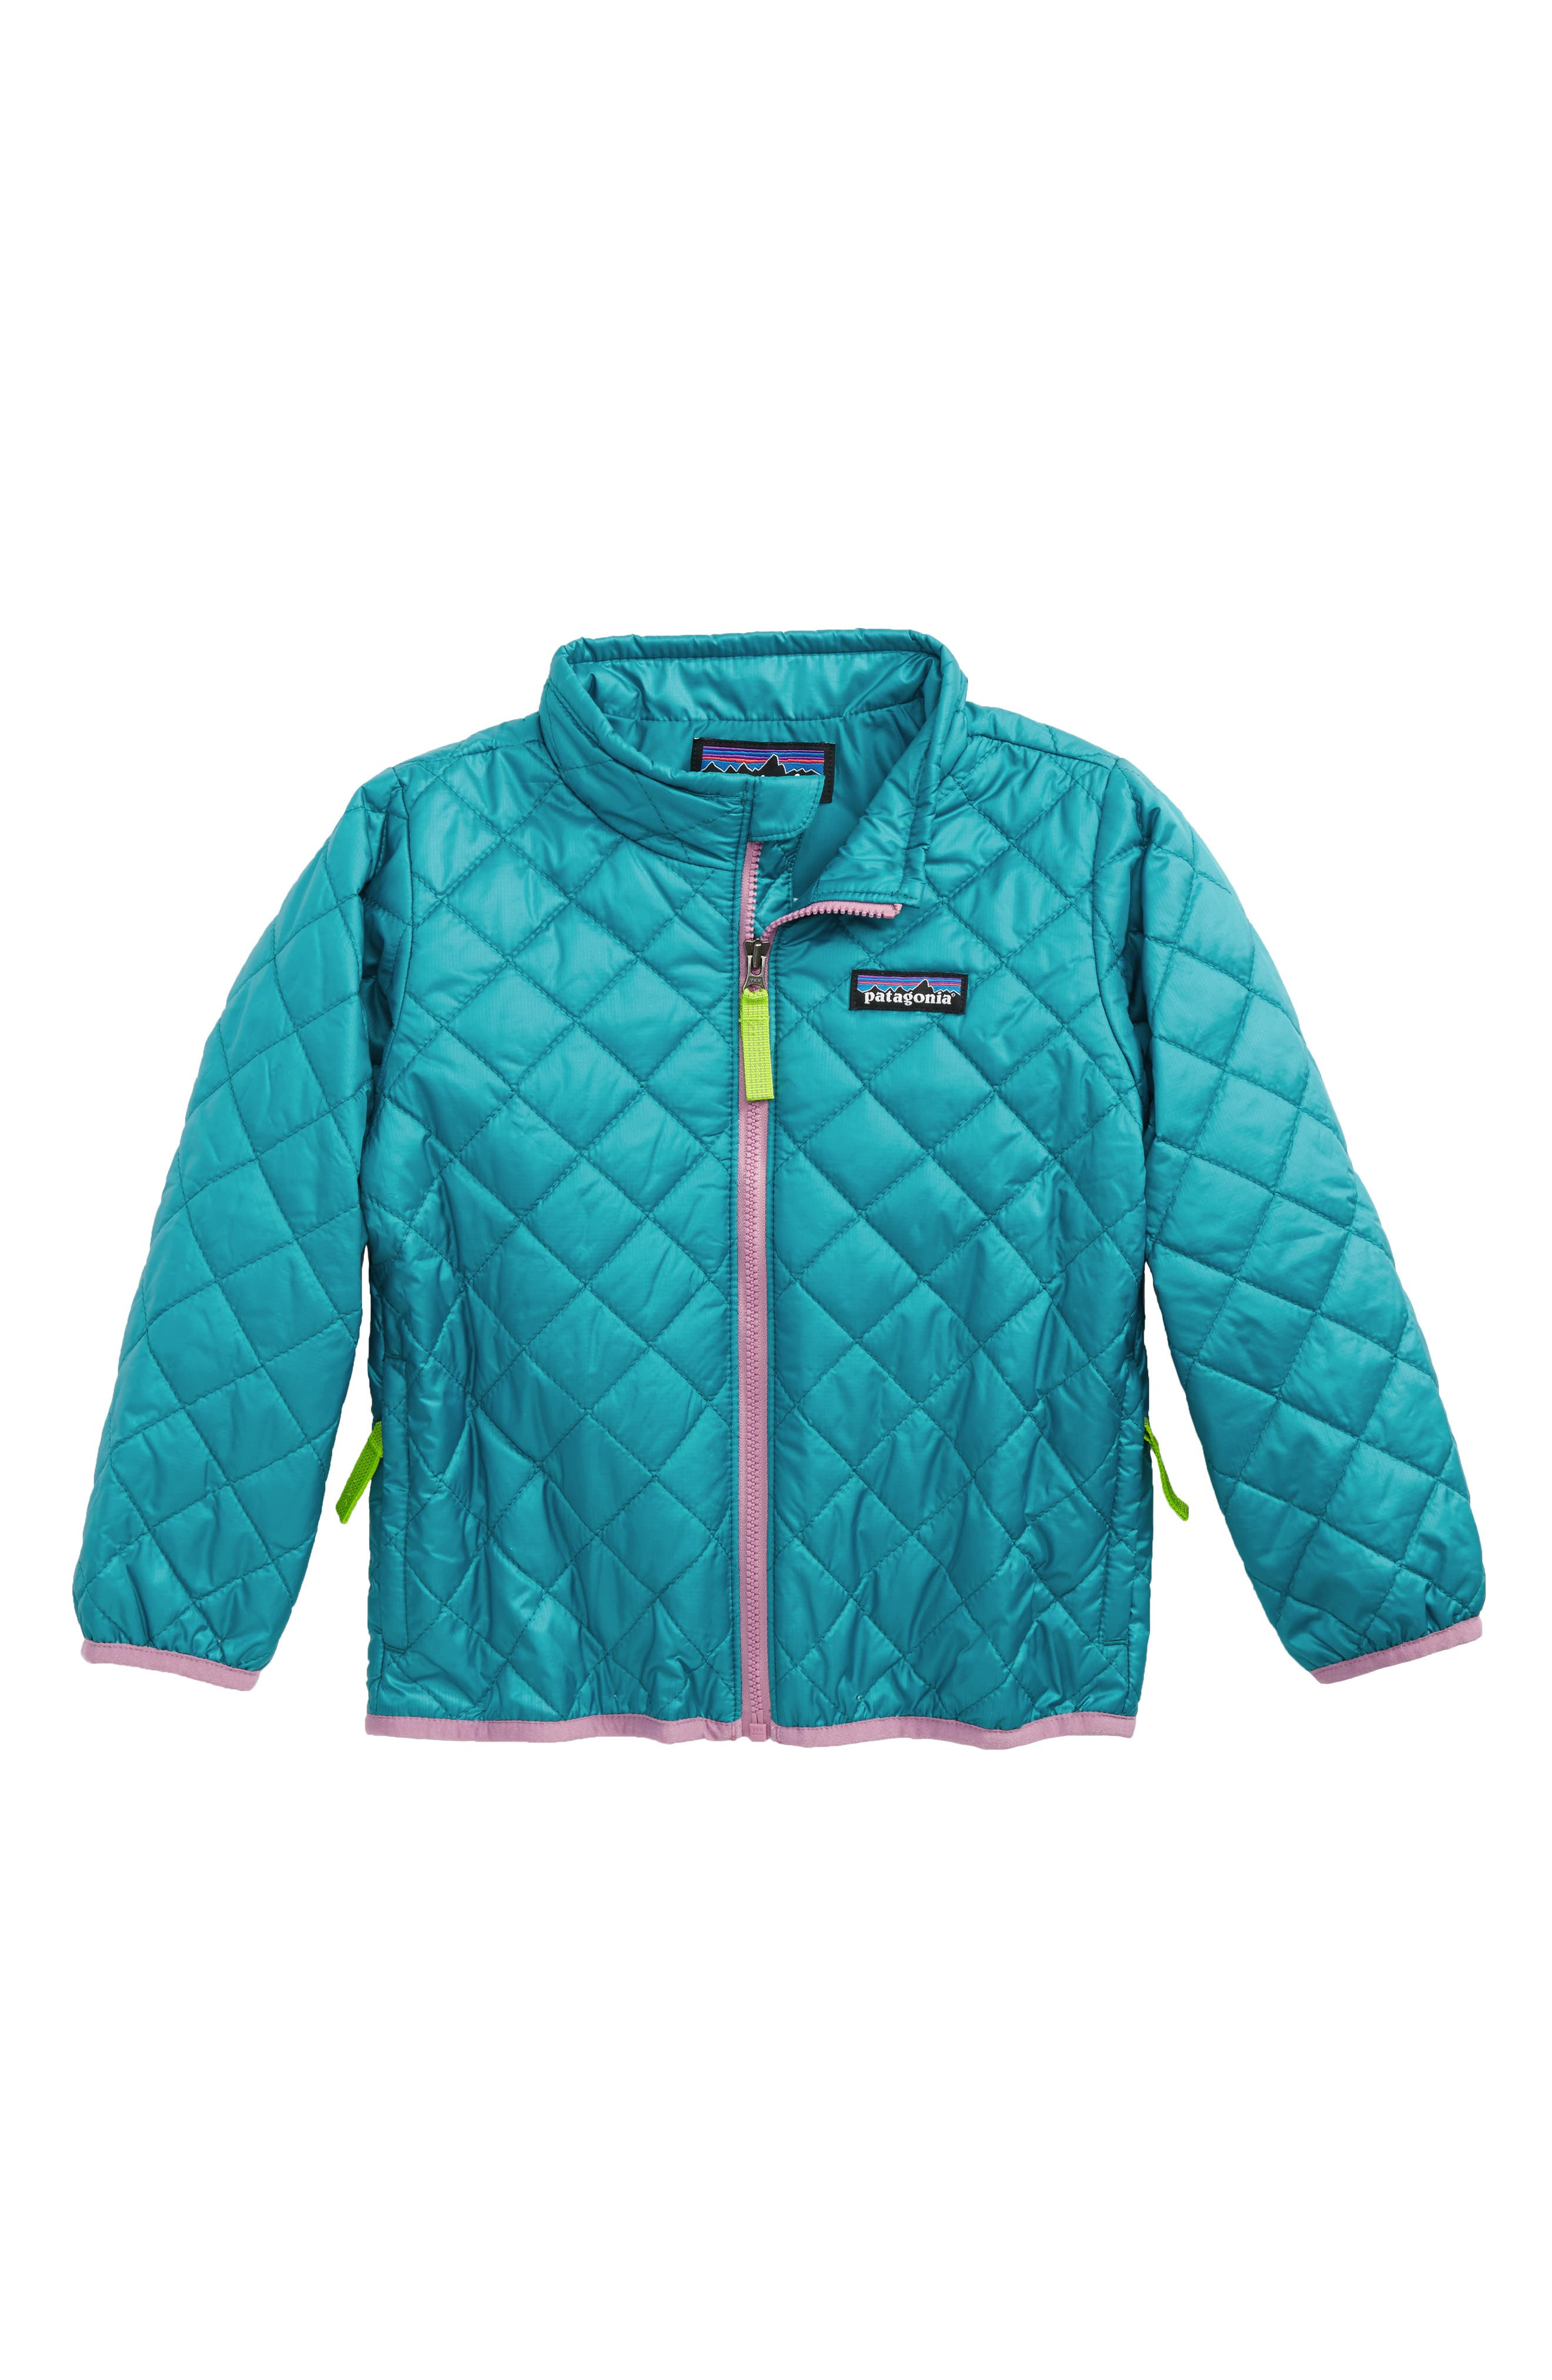 Nano Puff<sup>®</sup> Quilted Water Resistant Jacket,                         Main,                         color, 400